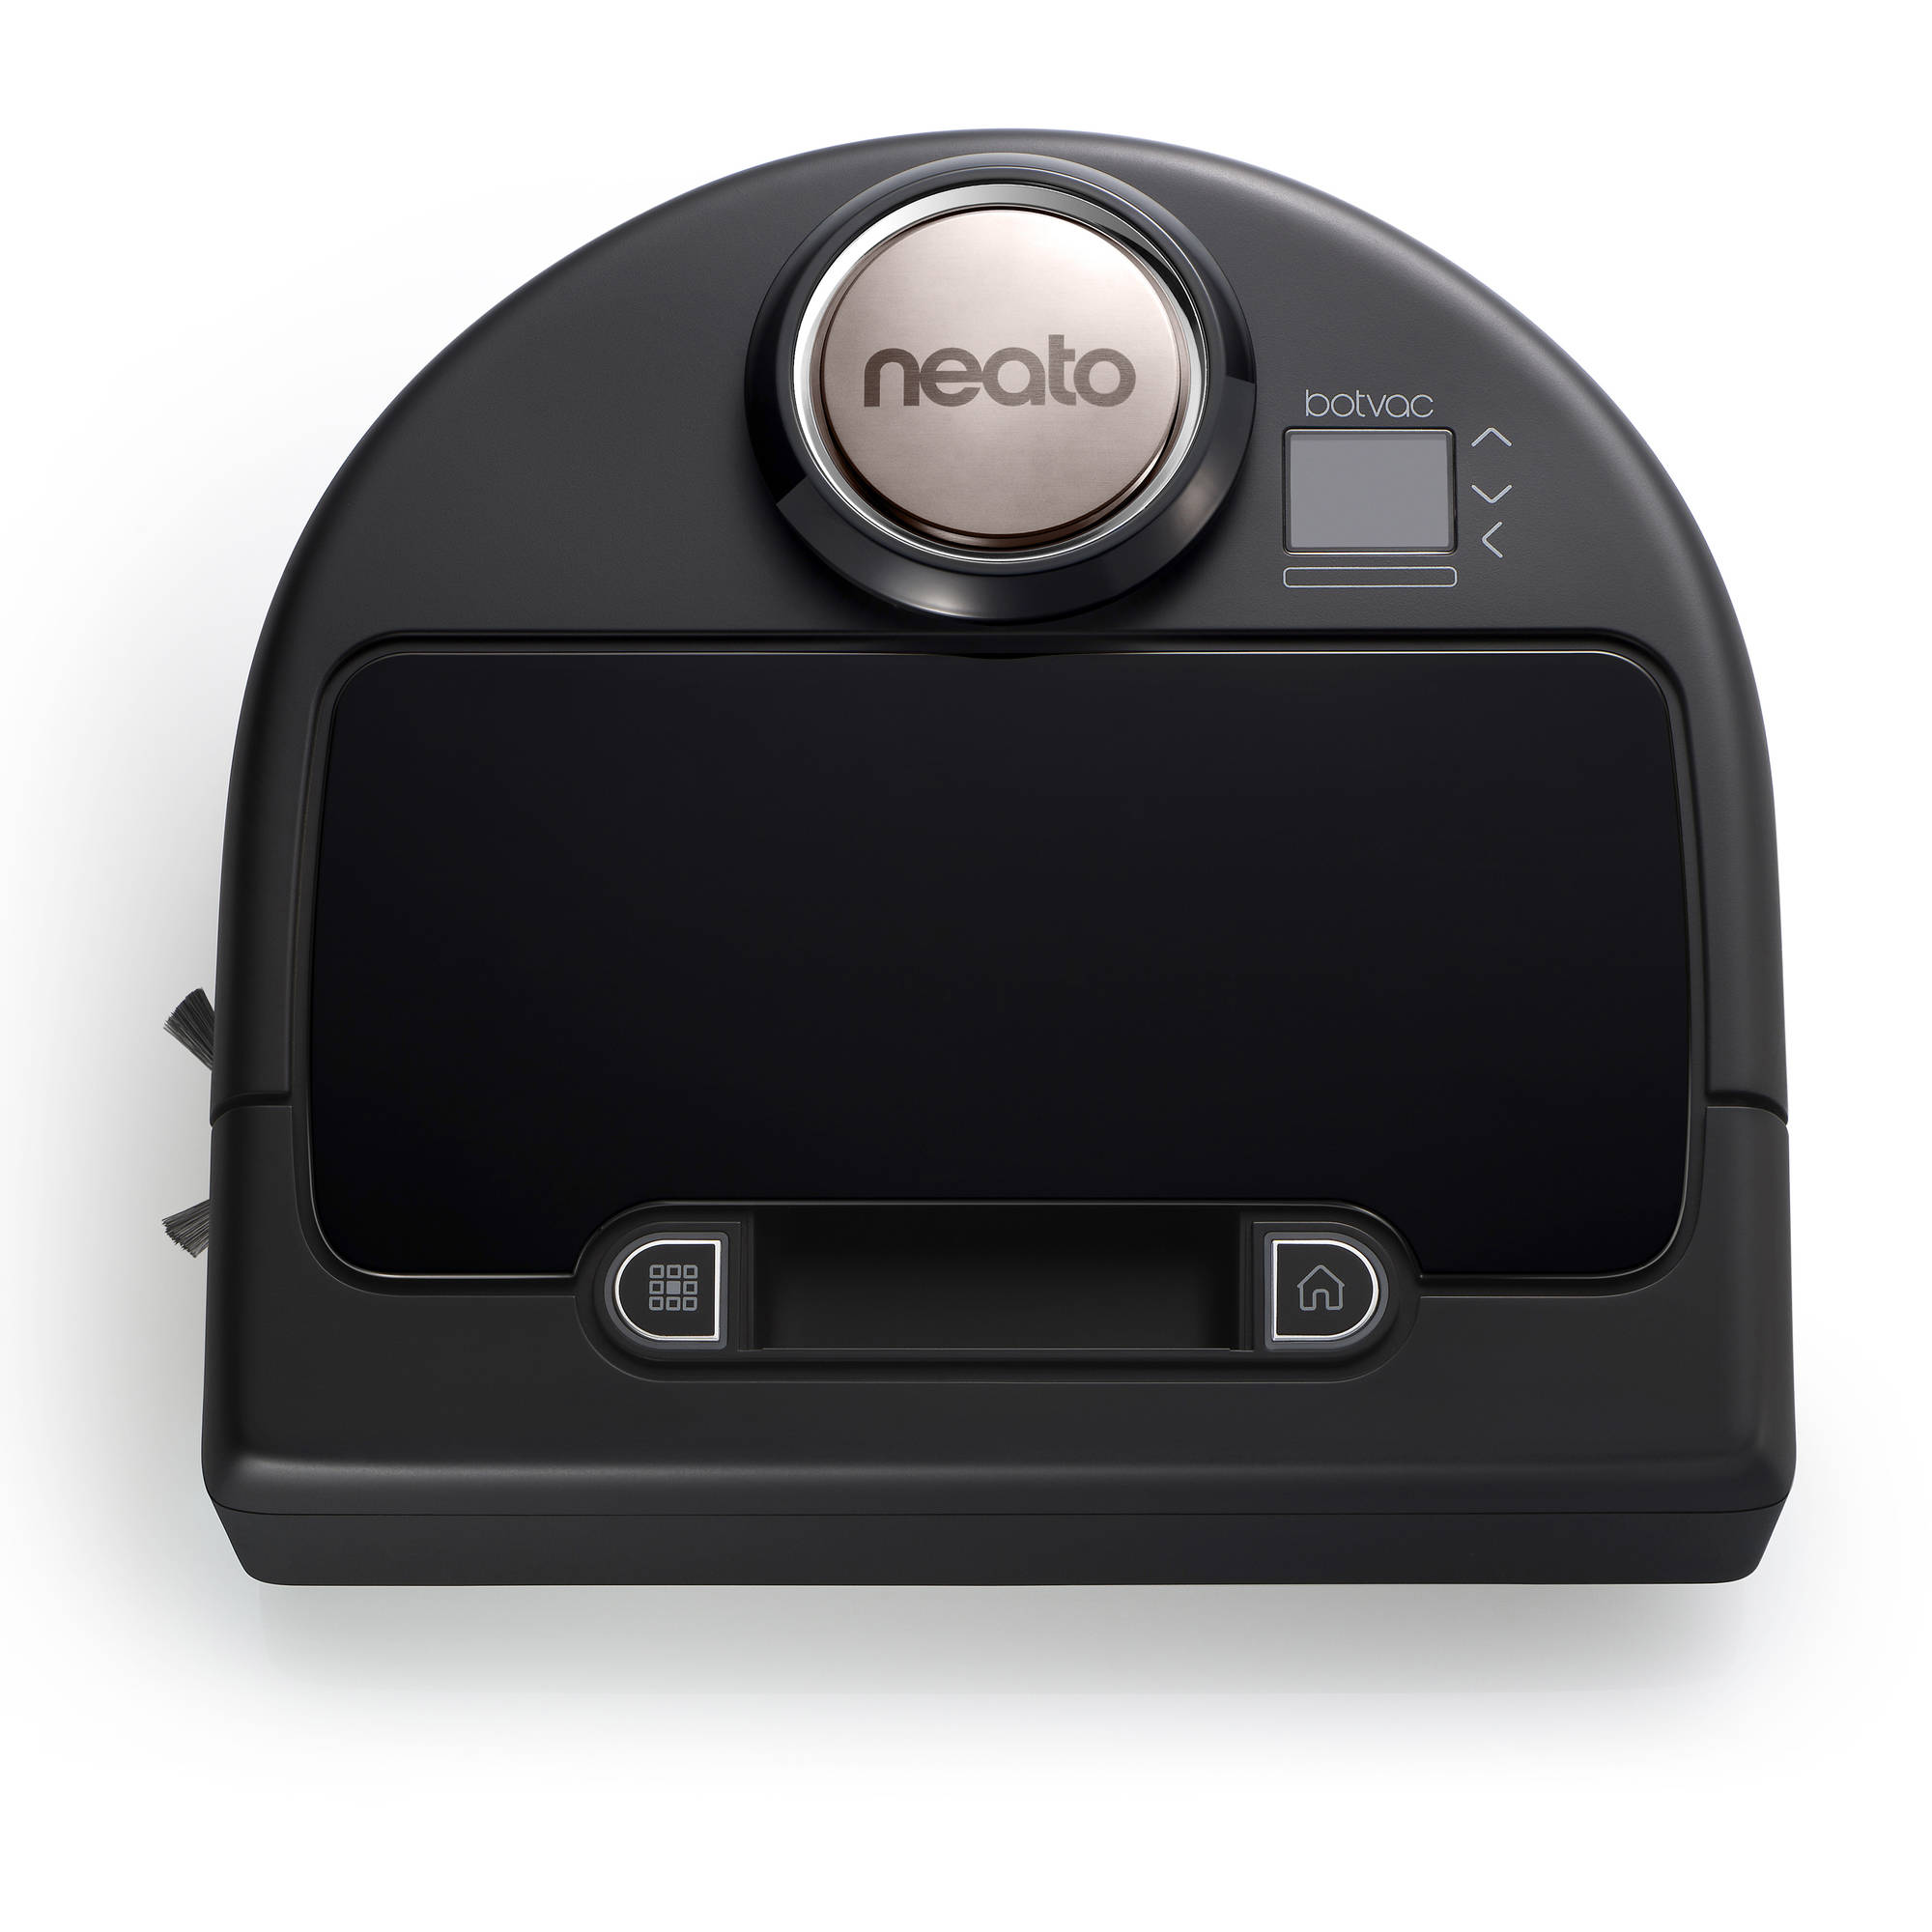 Neato Botvac Connected WiFi Enabled Robotic Vacuum, 945-0177